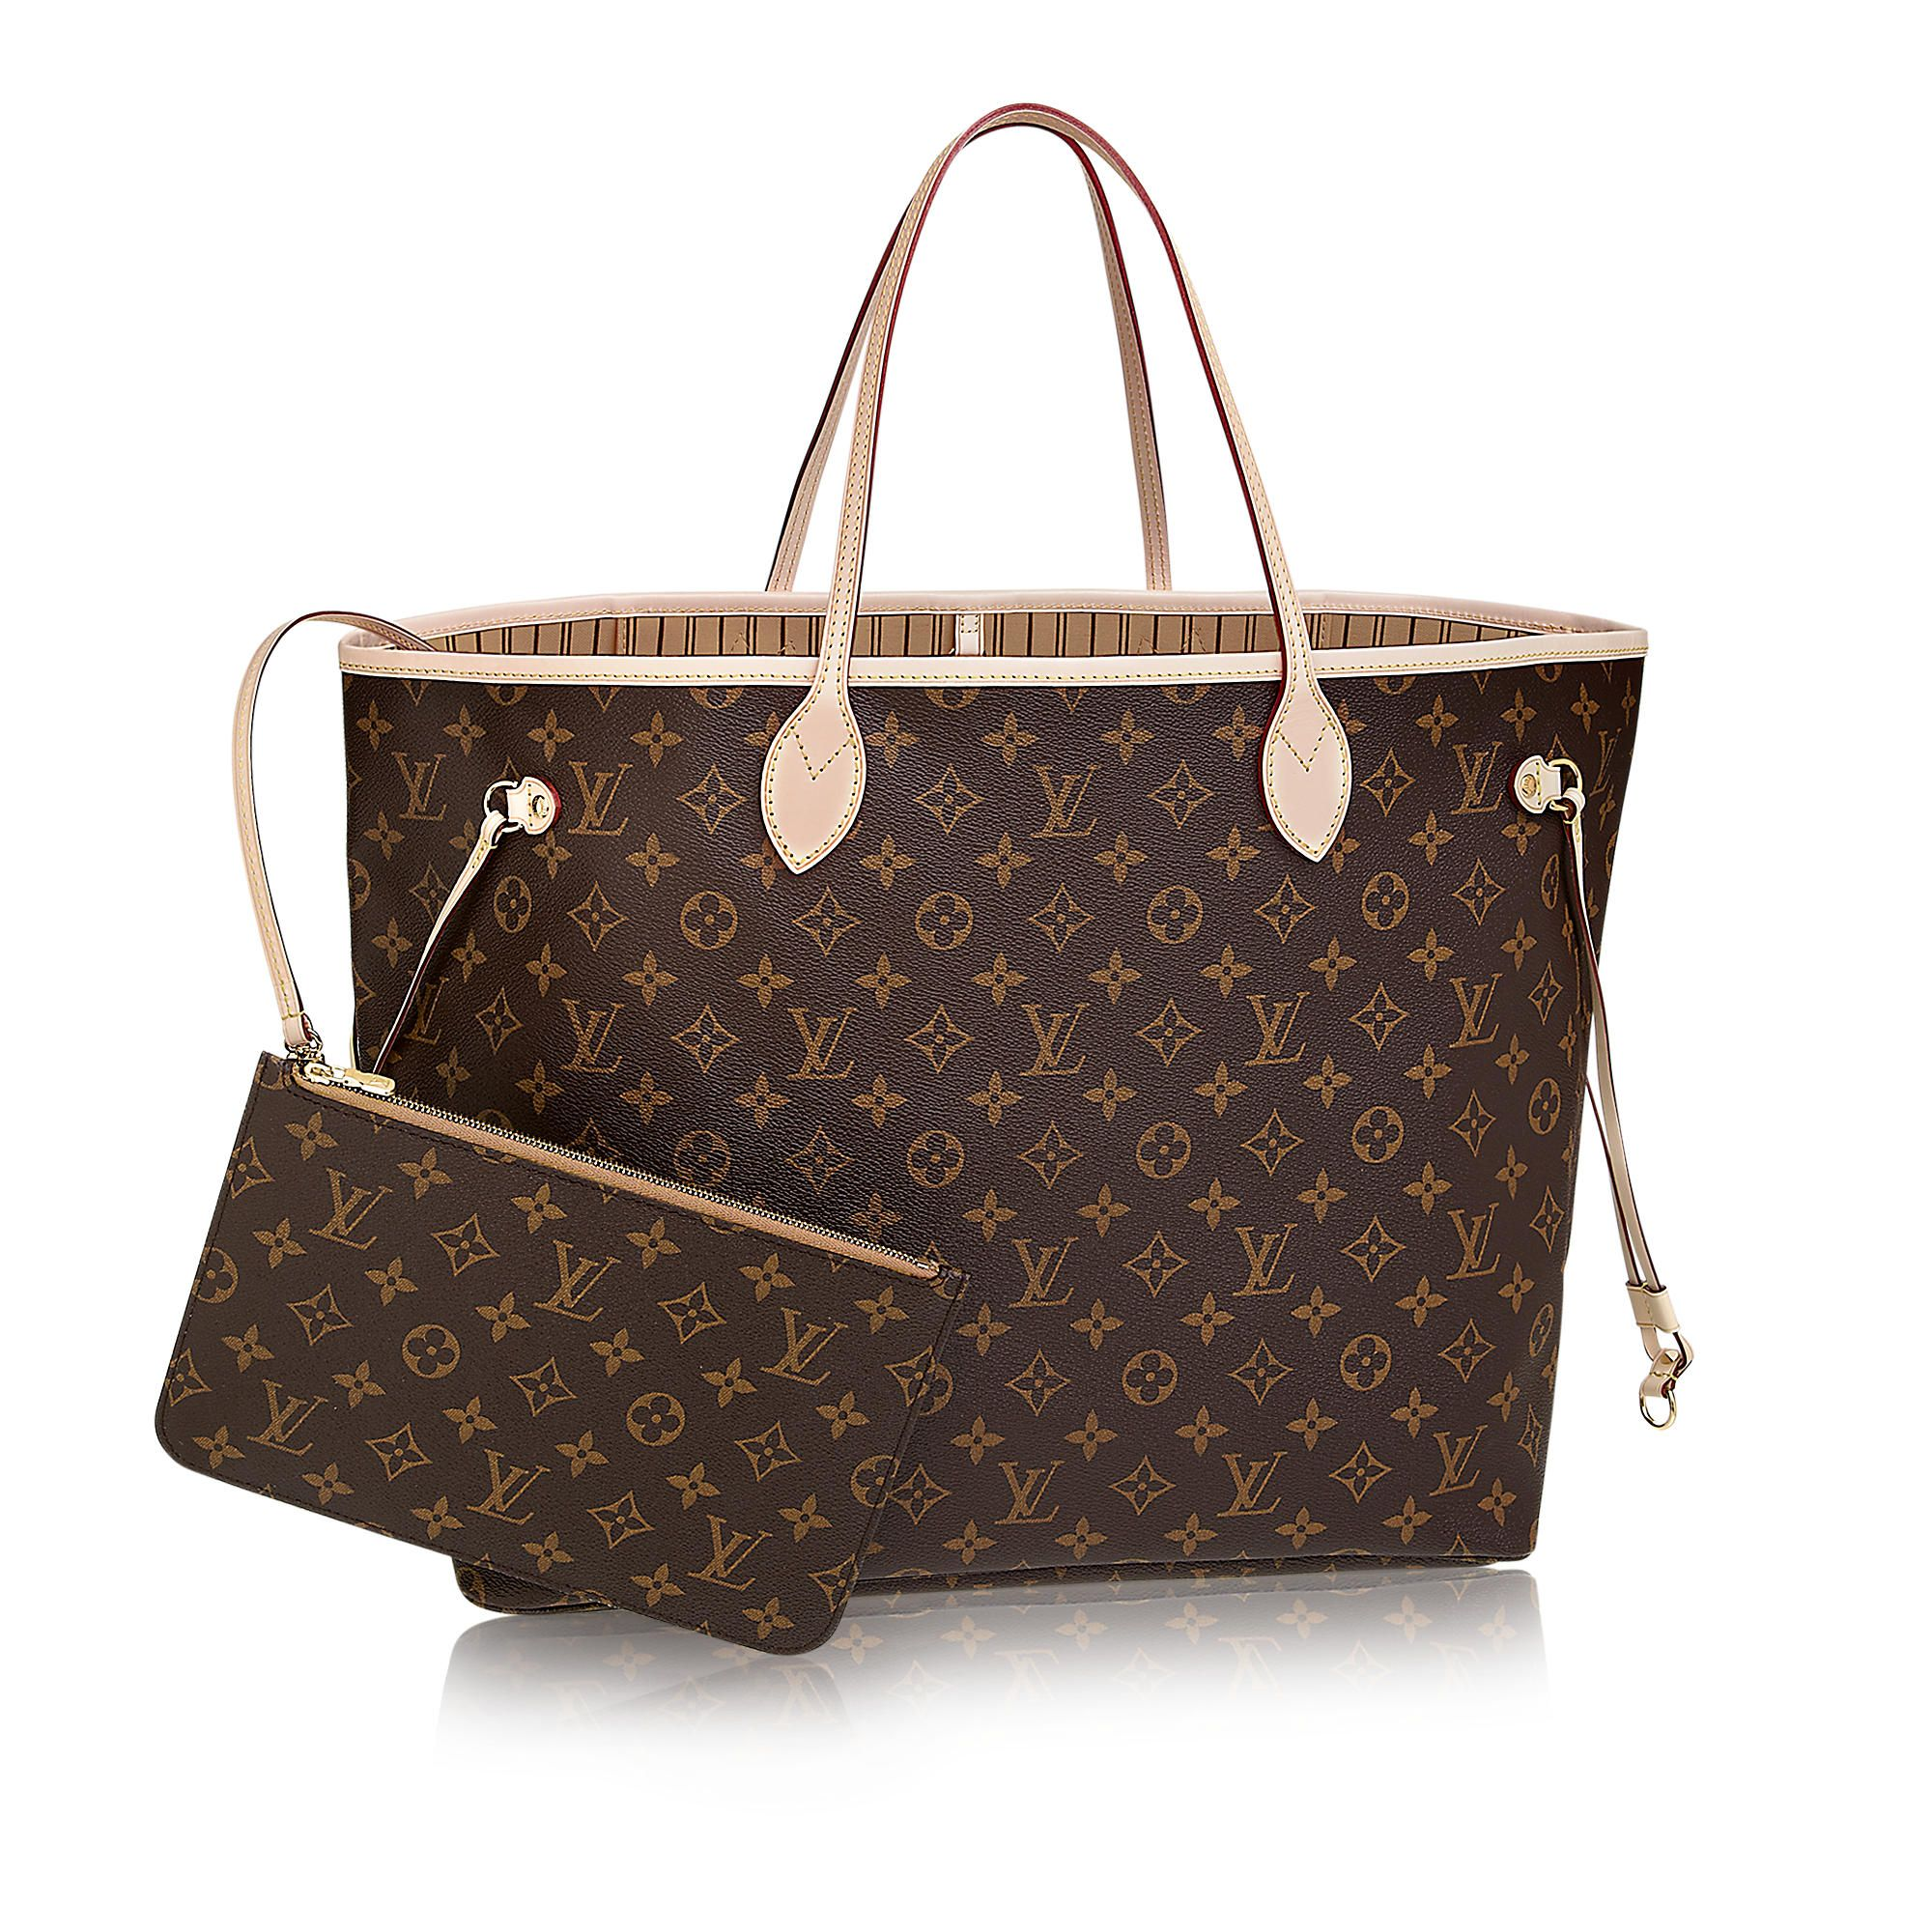 Save Up To 90 On Handbags By Louis Vuitton New York And More